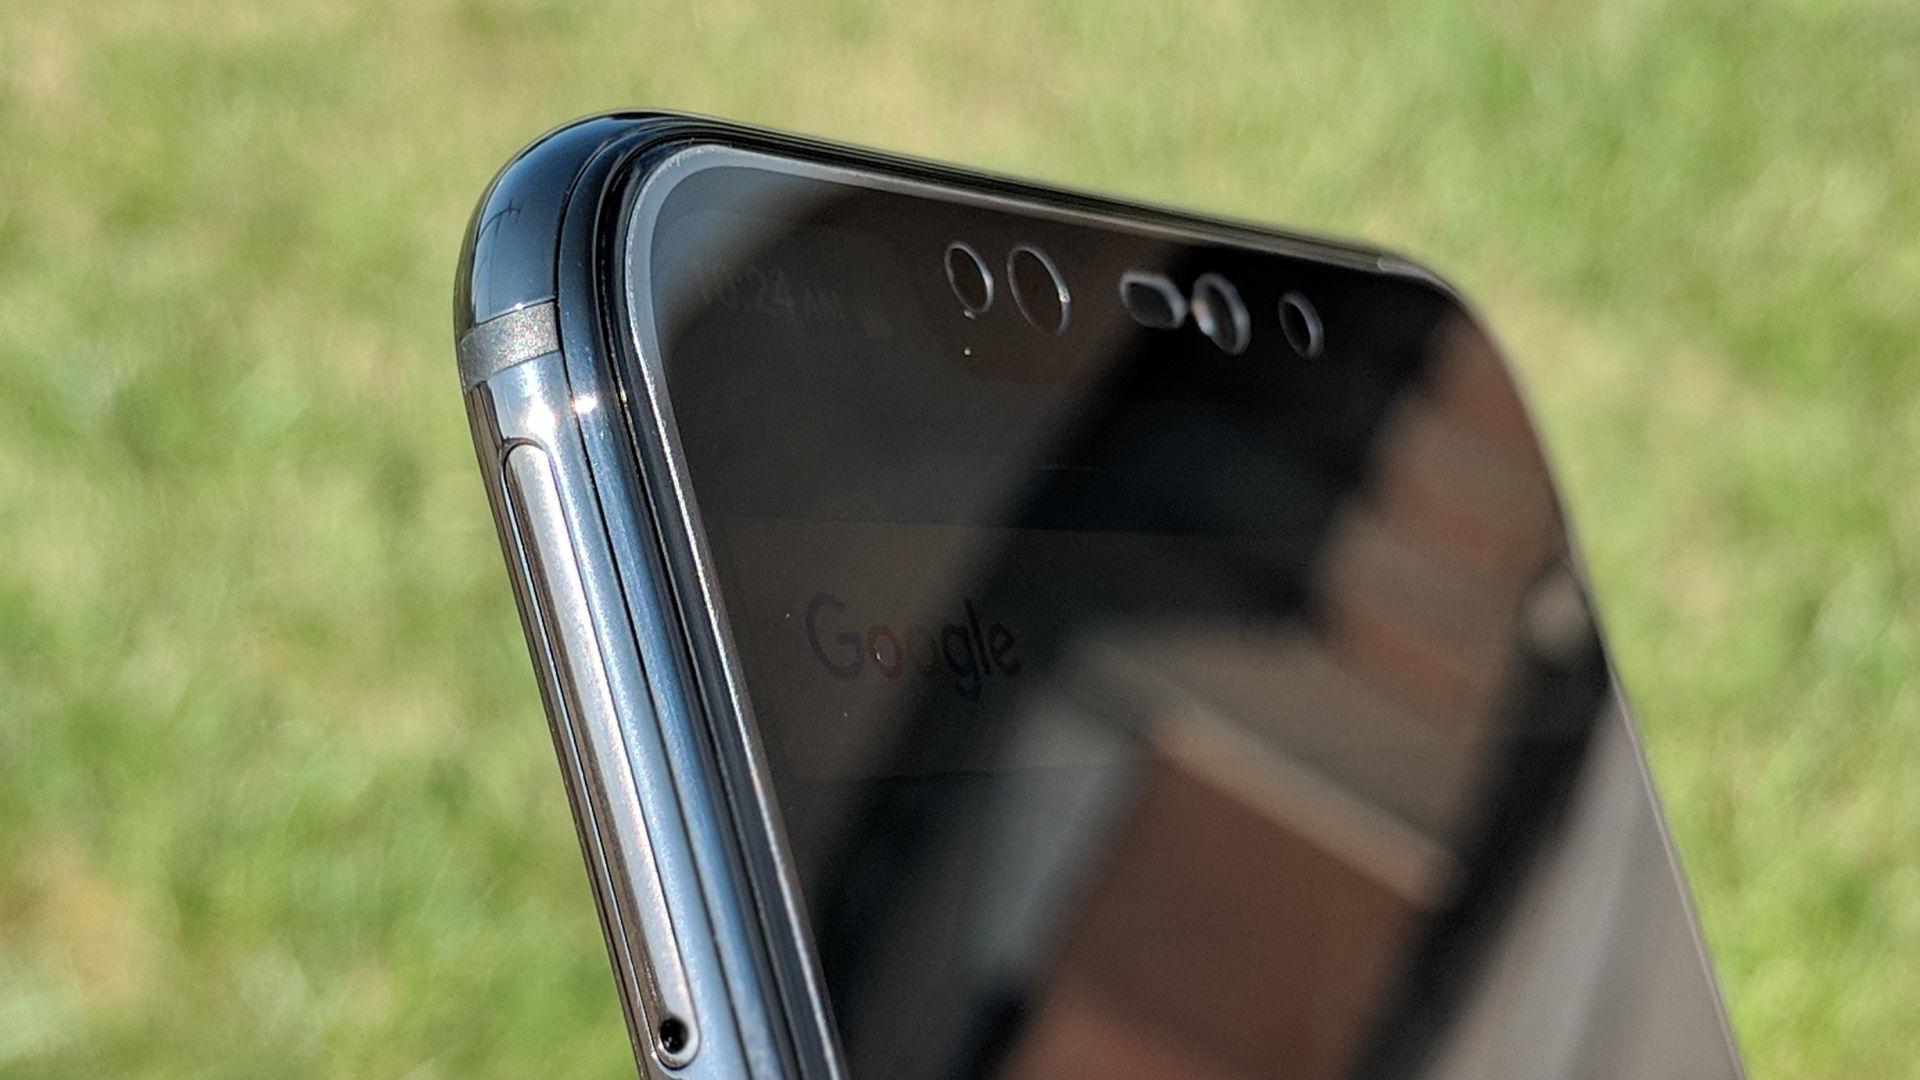 Blu VIVO XI+ review: A new direction for the unlocked phone maker